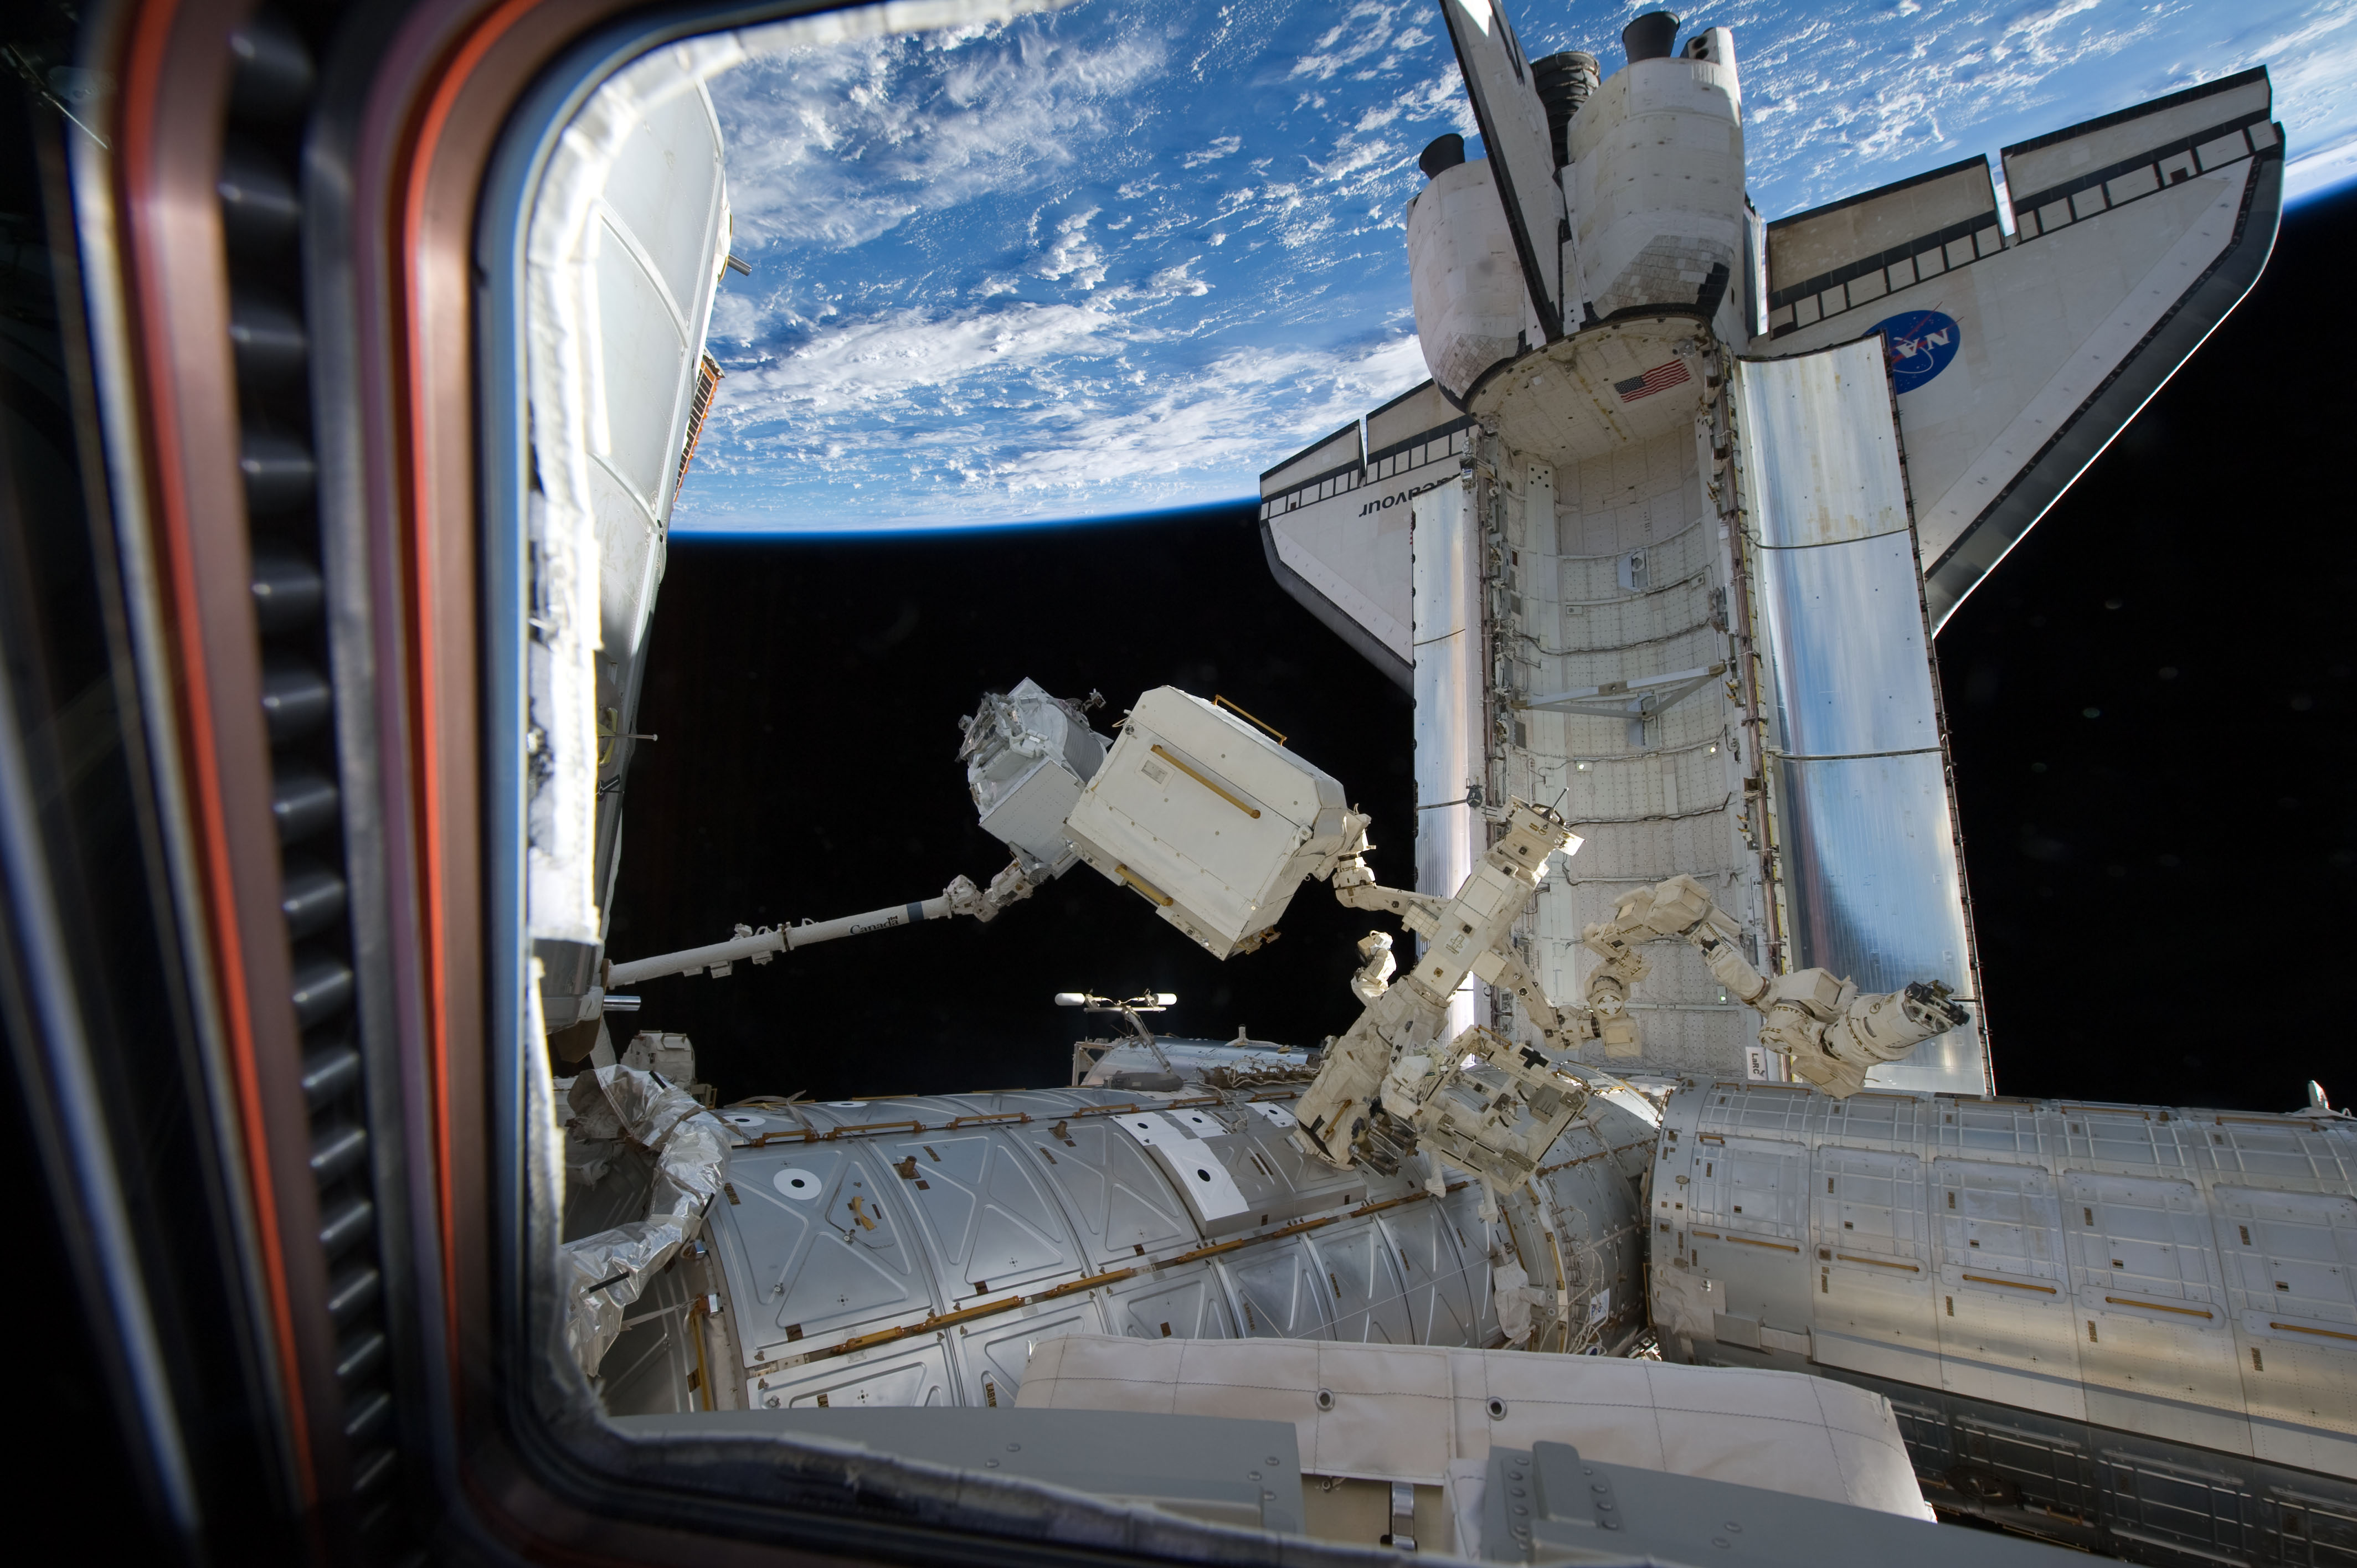 file sts 134 view from the cupola to space shuttle